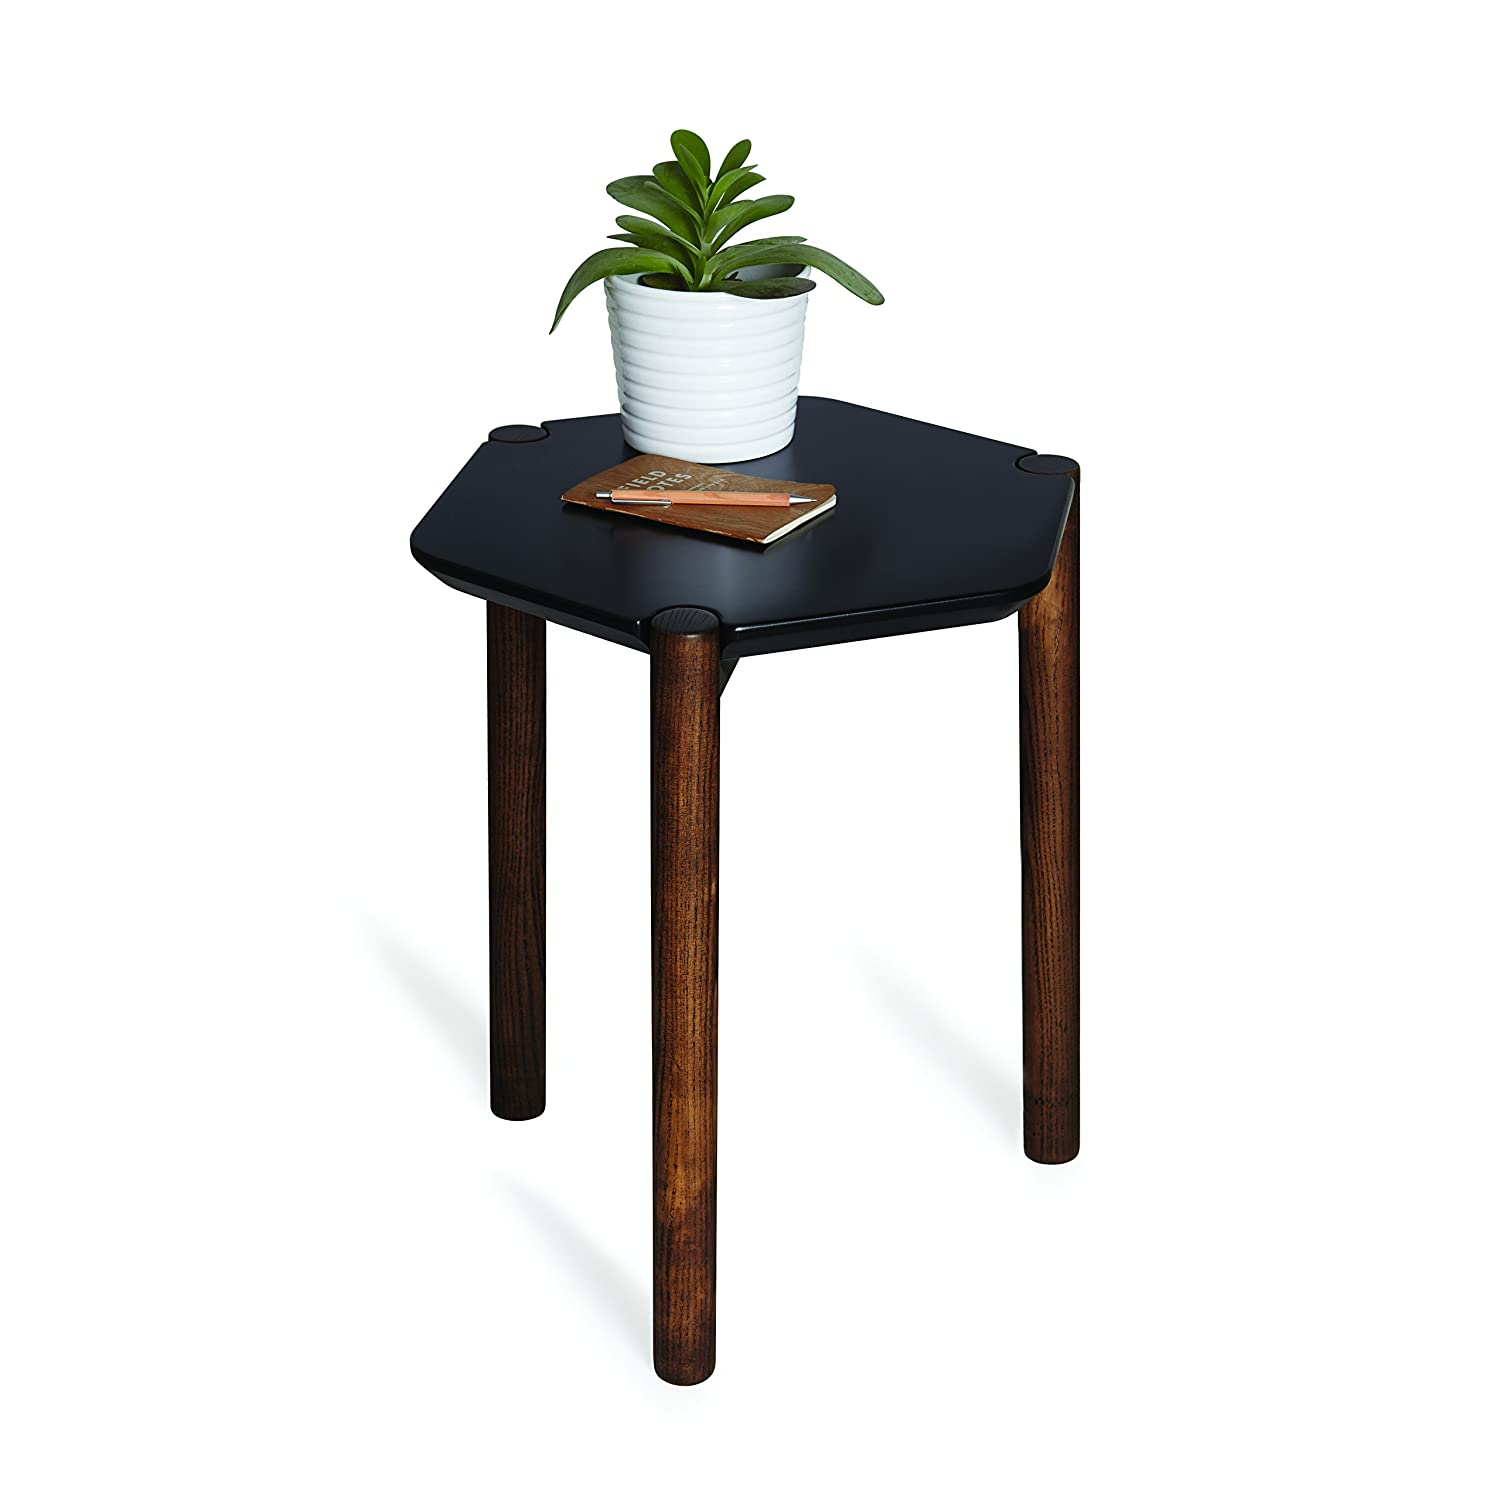 Copper//Black Metal 16.5 x 16.5 x 27.5 Inches Sagebrook Home 11025 Metal Accent Table